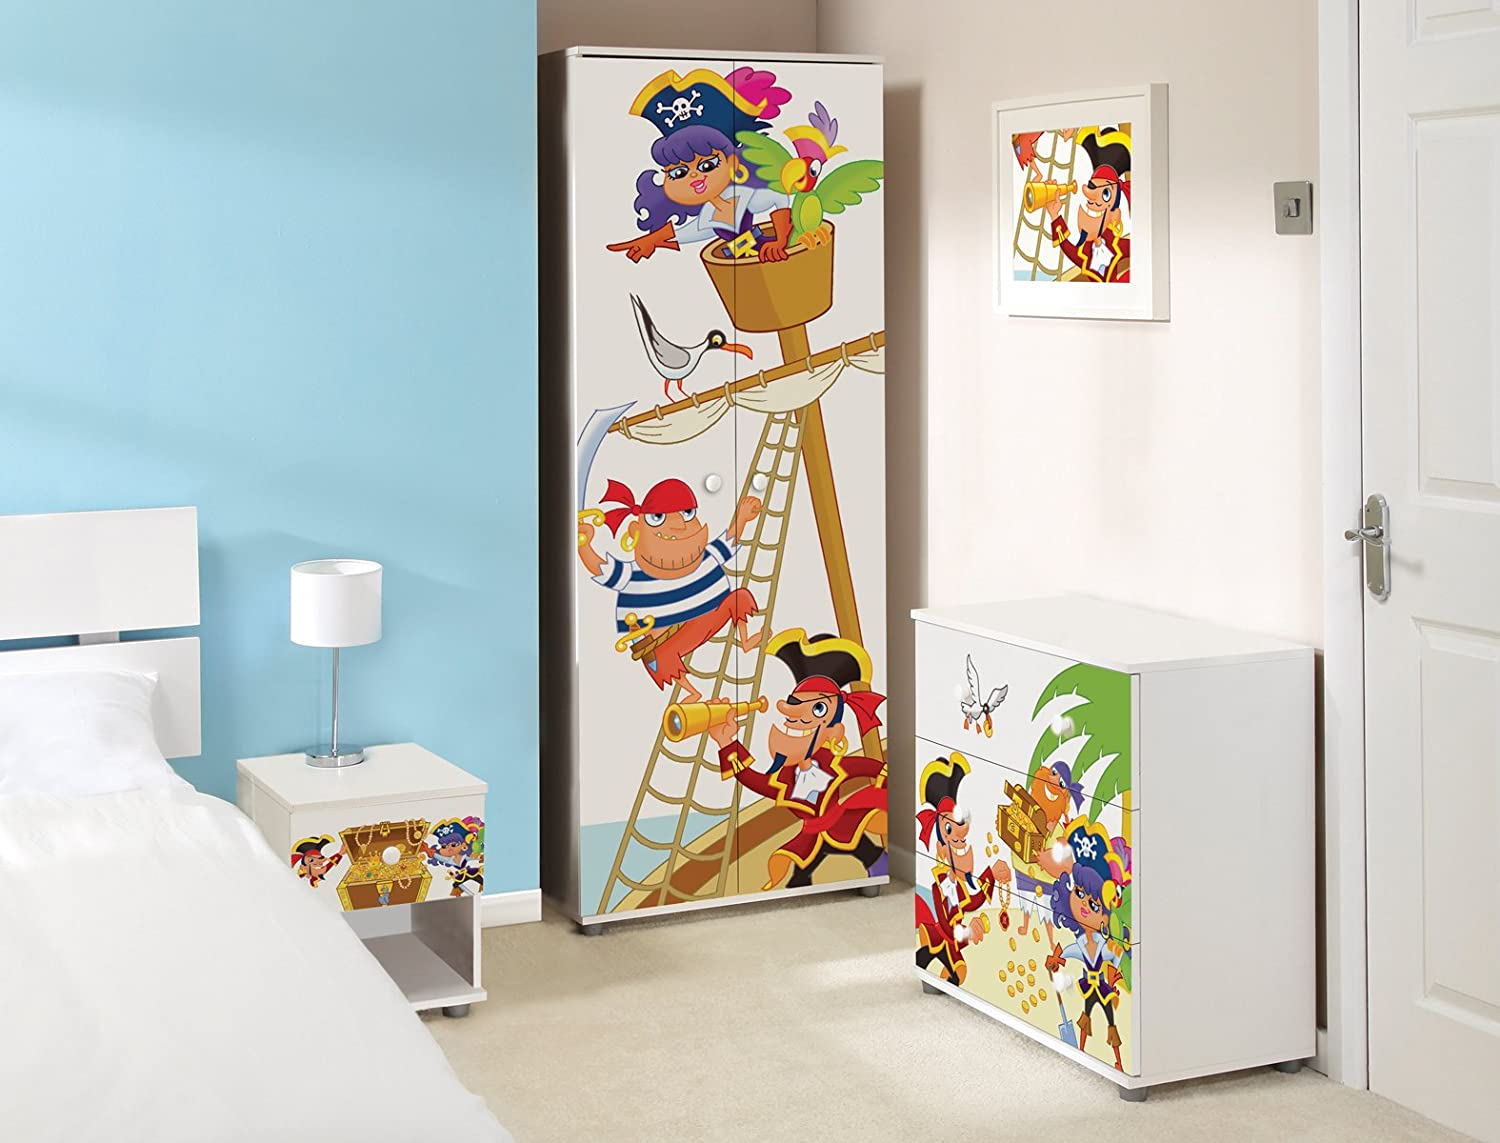 Pirate Design Childrens/Kids White Bedroom Furniture Sets: Amazon.co.uk:  Kitchen U0026 Home